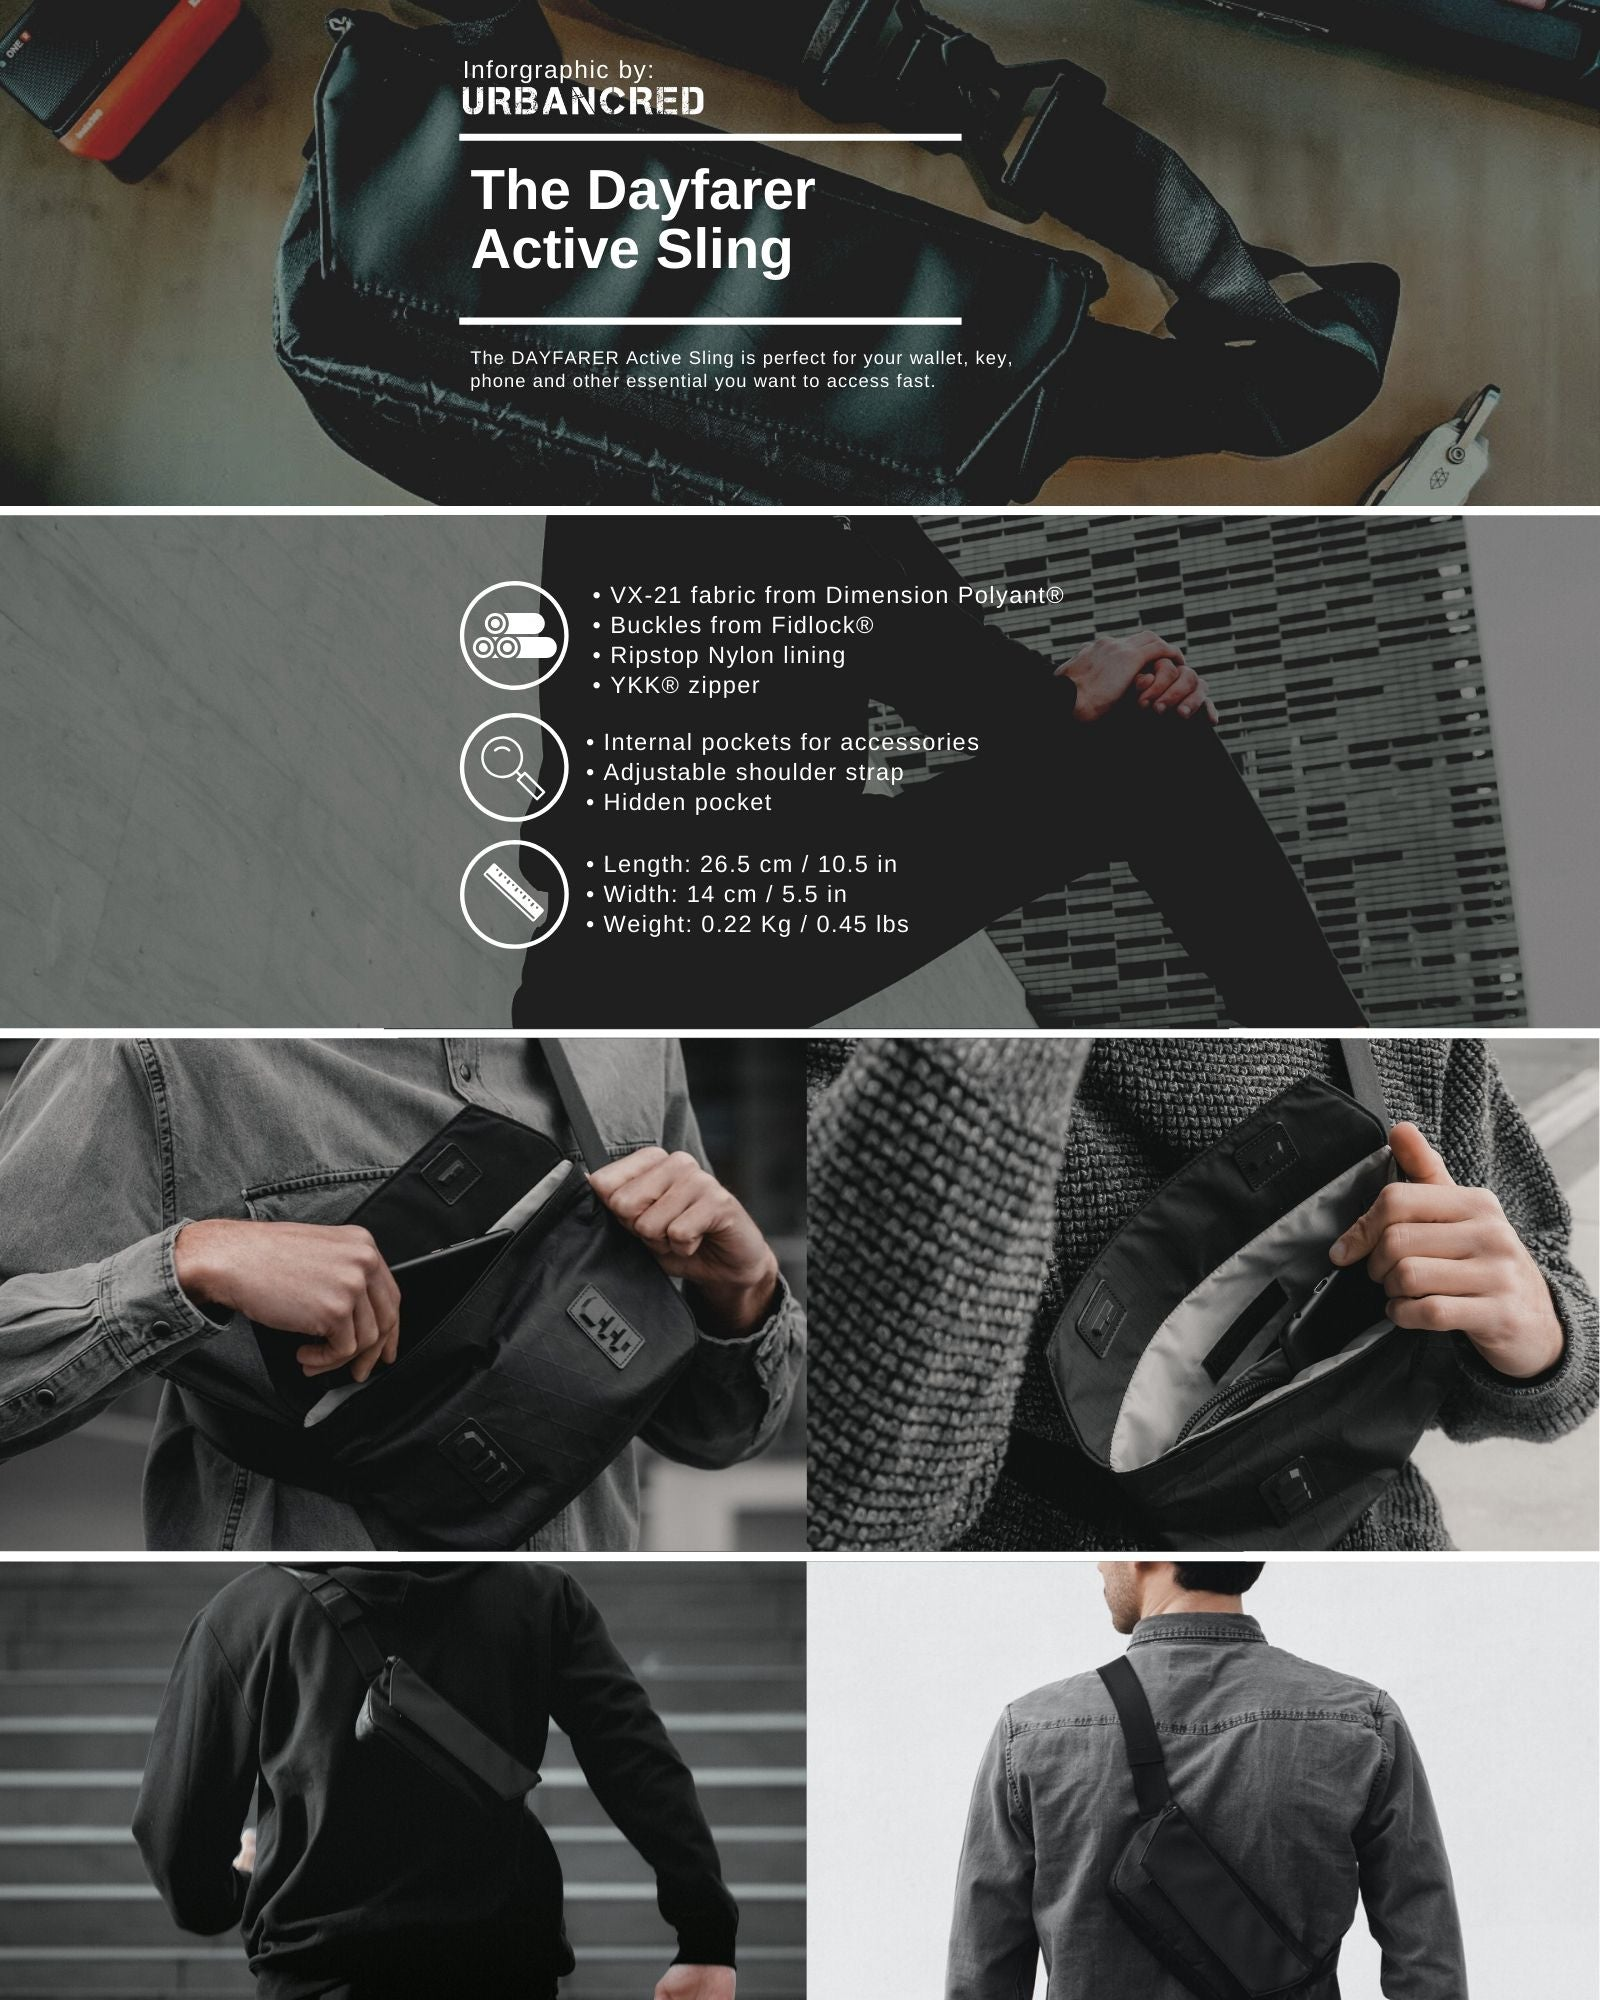 UrbanCred Infographic for the Dayfarer Active Sling